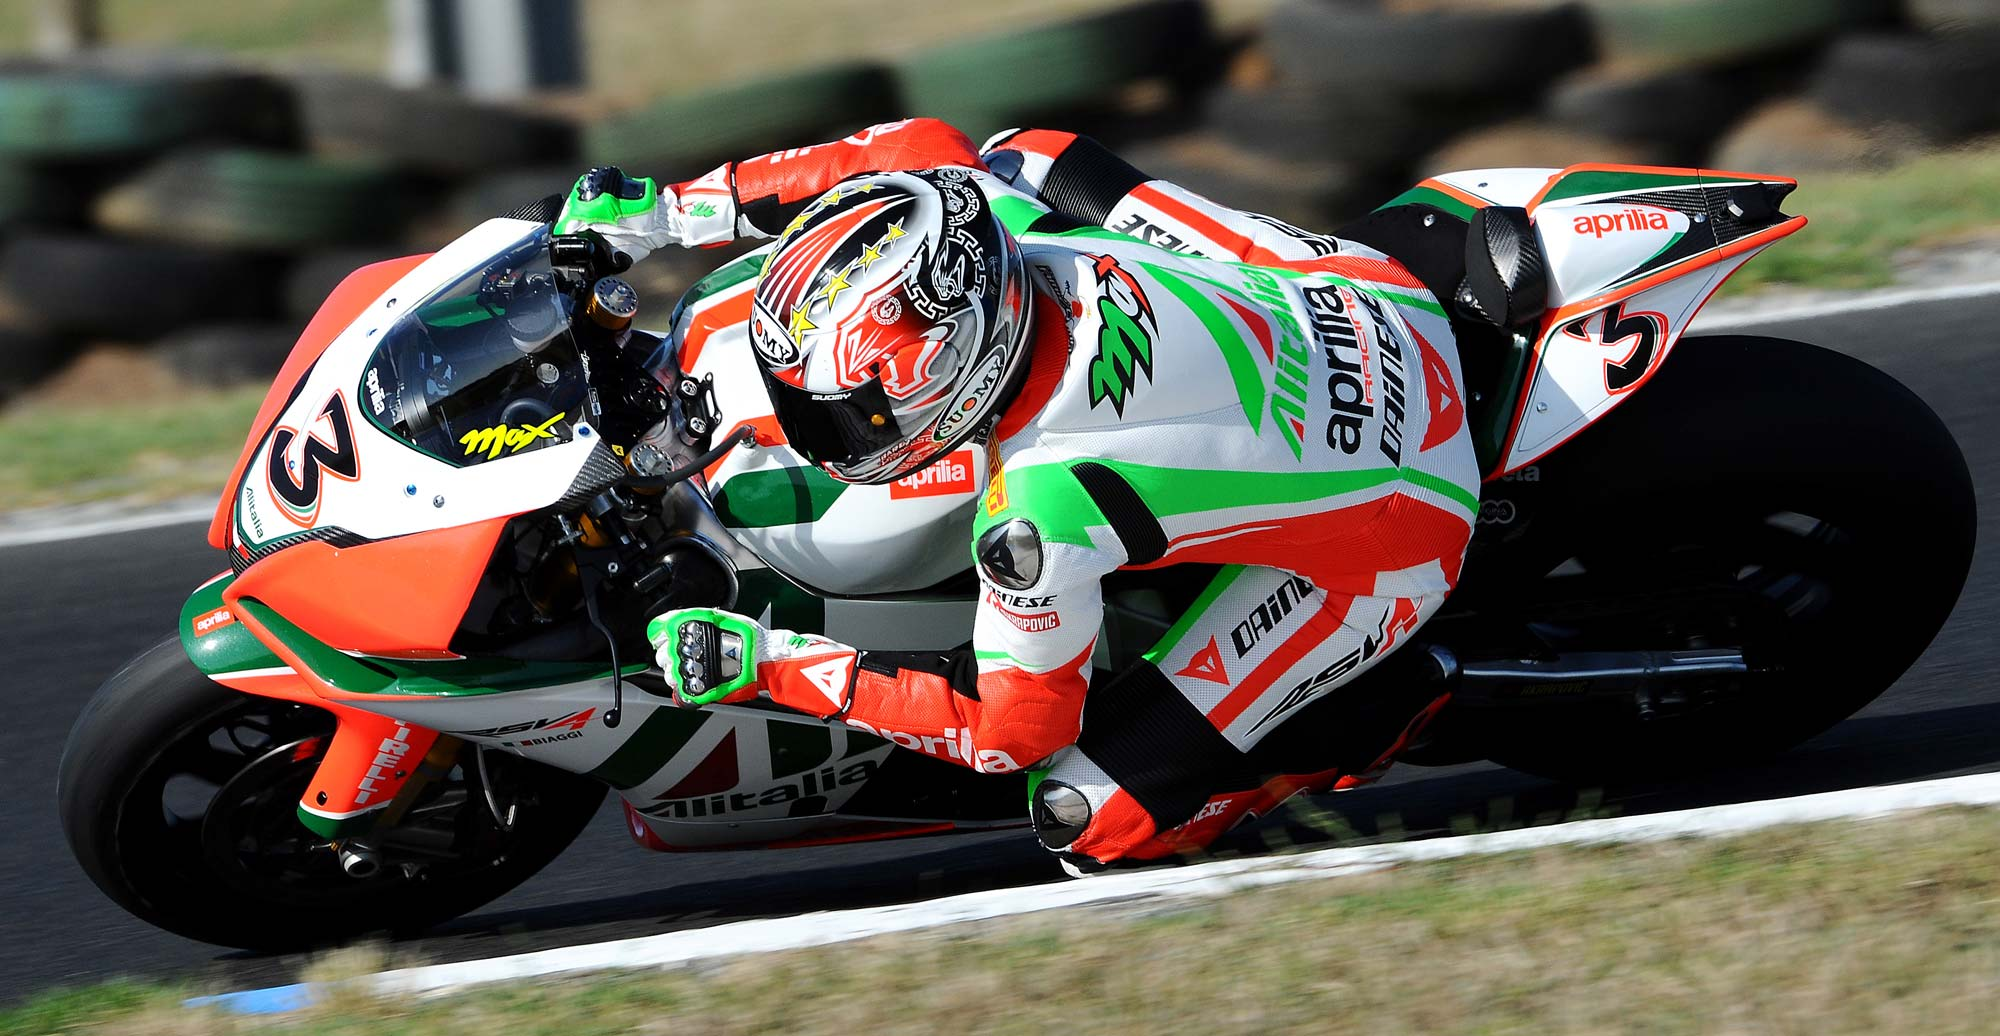 Max biaggi signs with aprilia for another two years asphalt rubber max biaggi wsbk world championship aprilia 3 altavistaventures Gallery